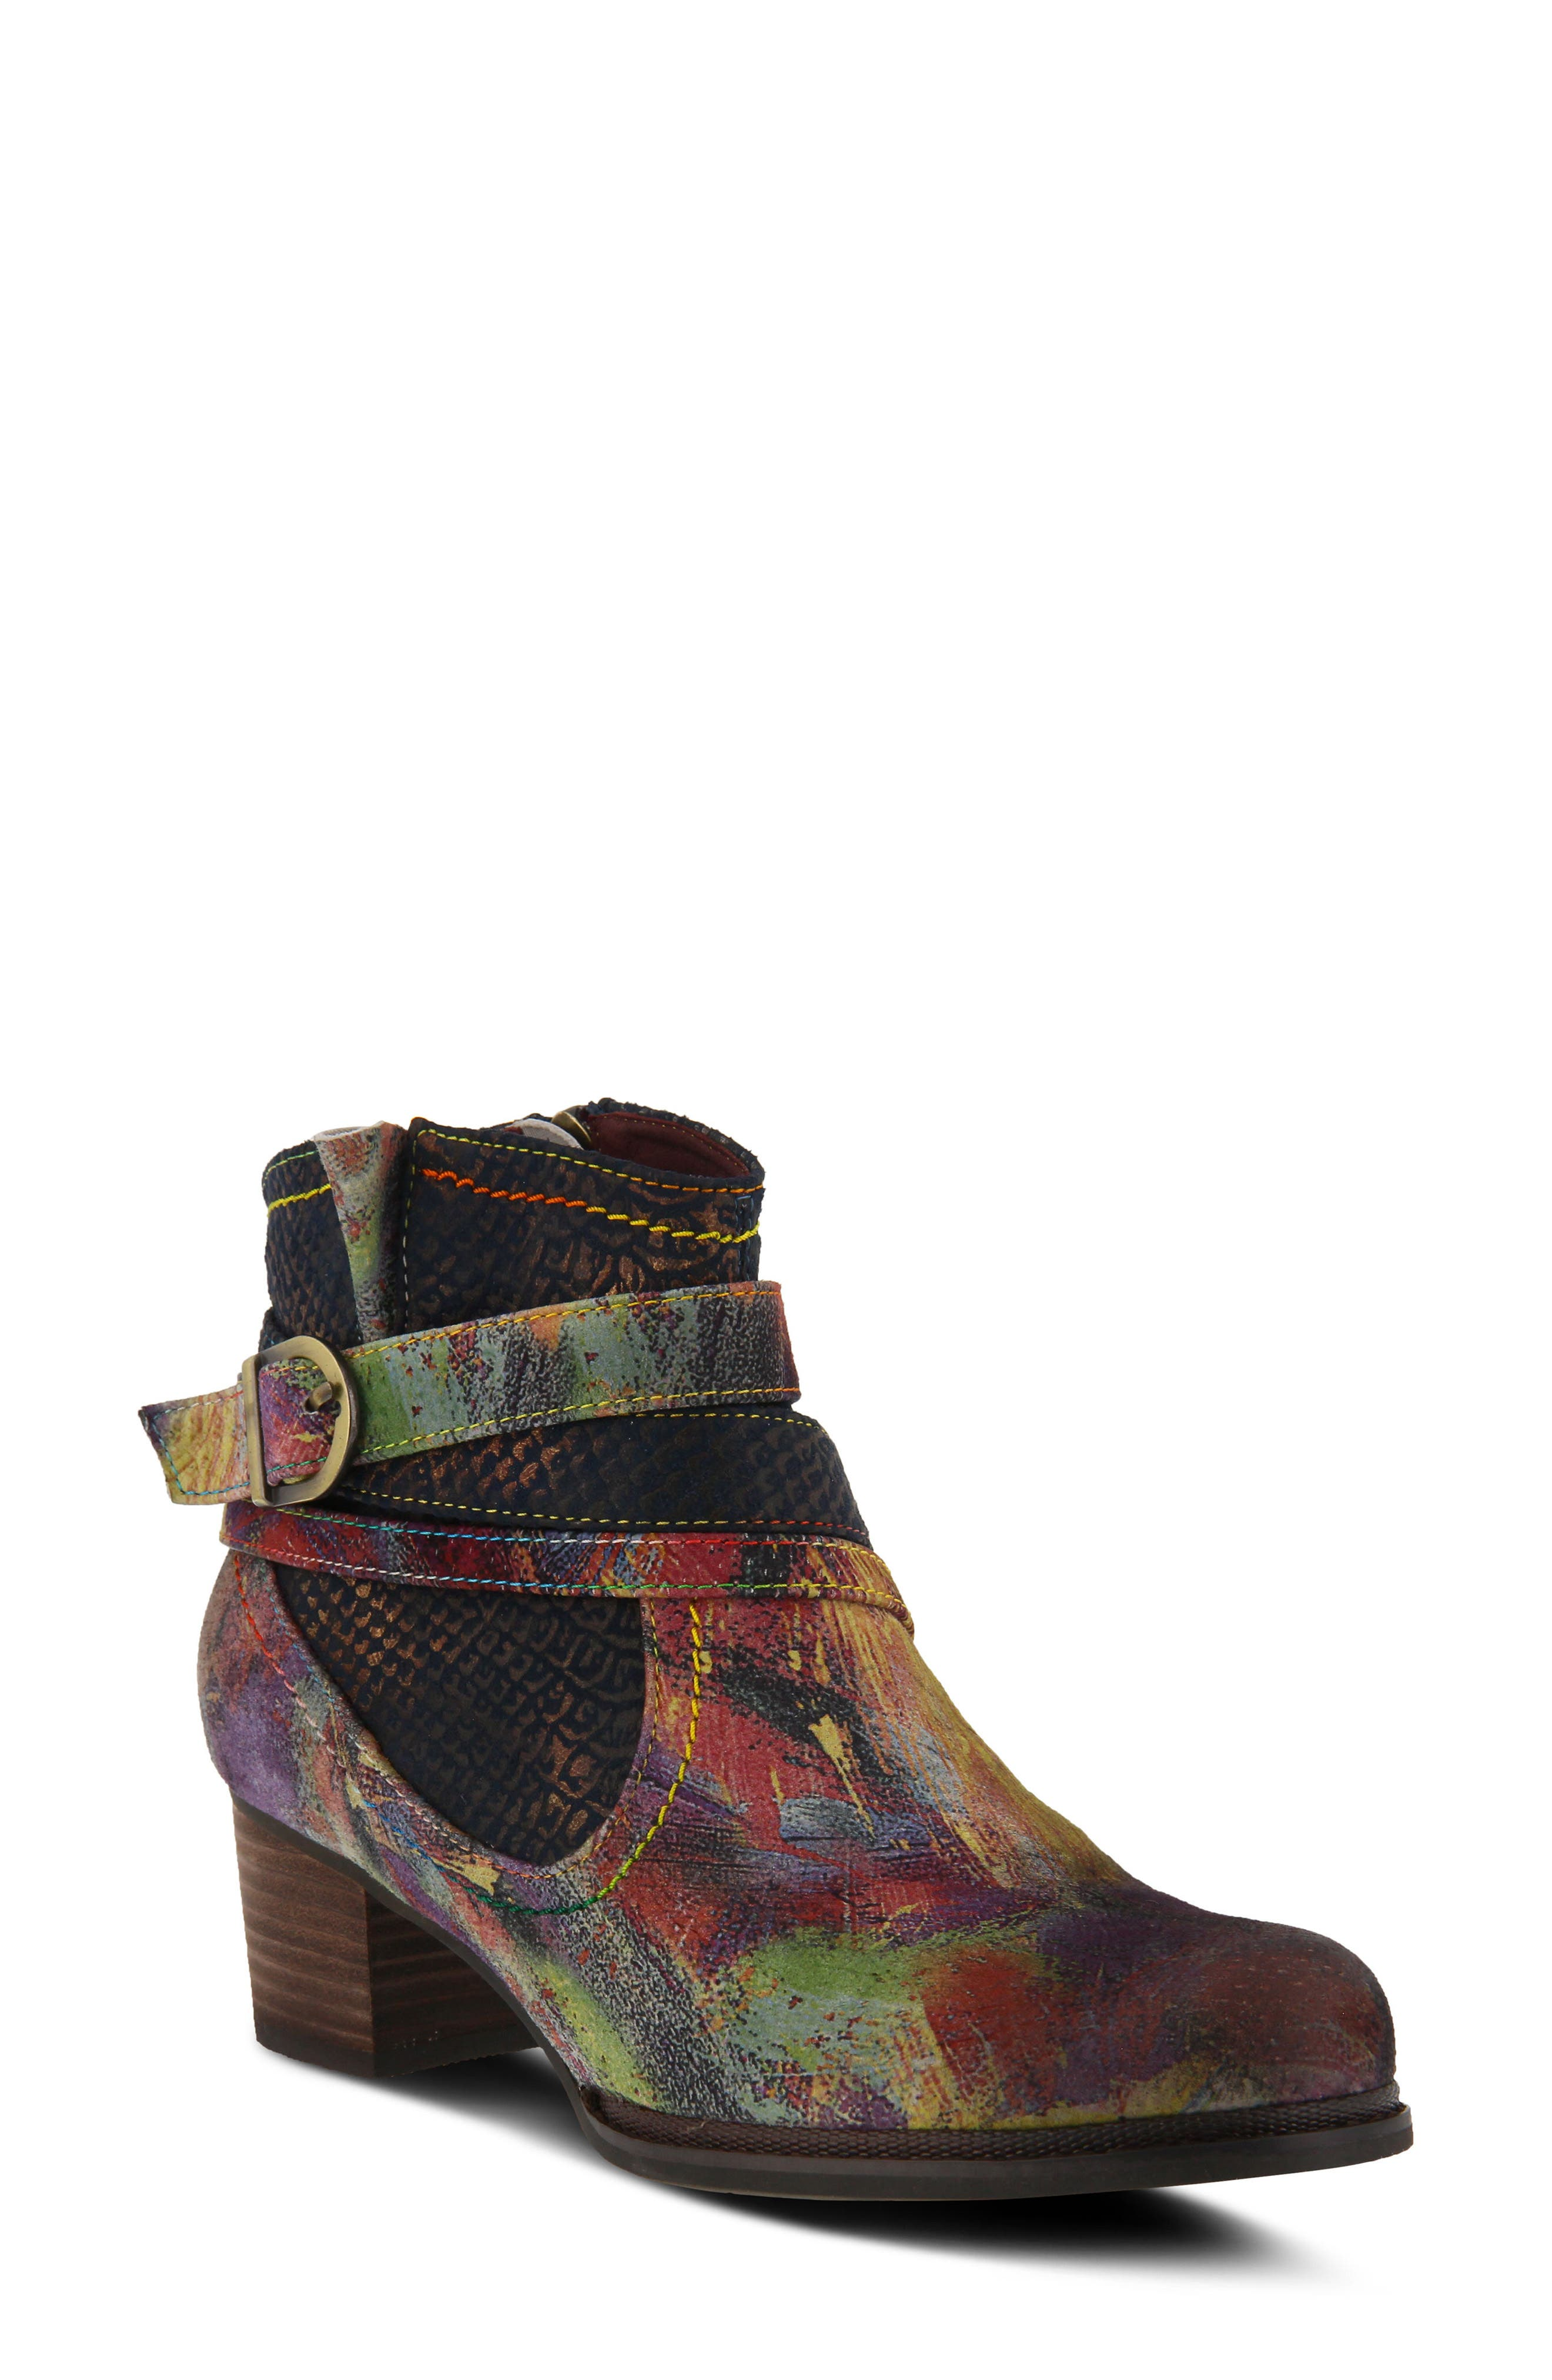 L'Artiste Shazzam Boot,                         Main,                         color, Navy Leather